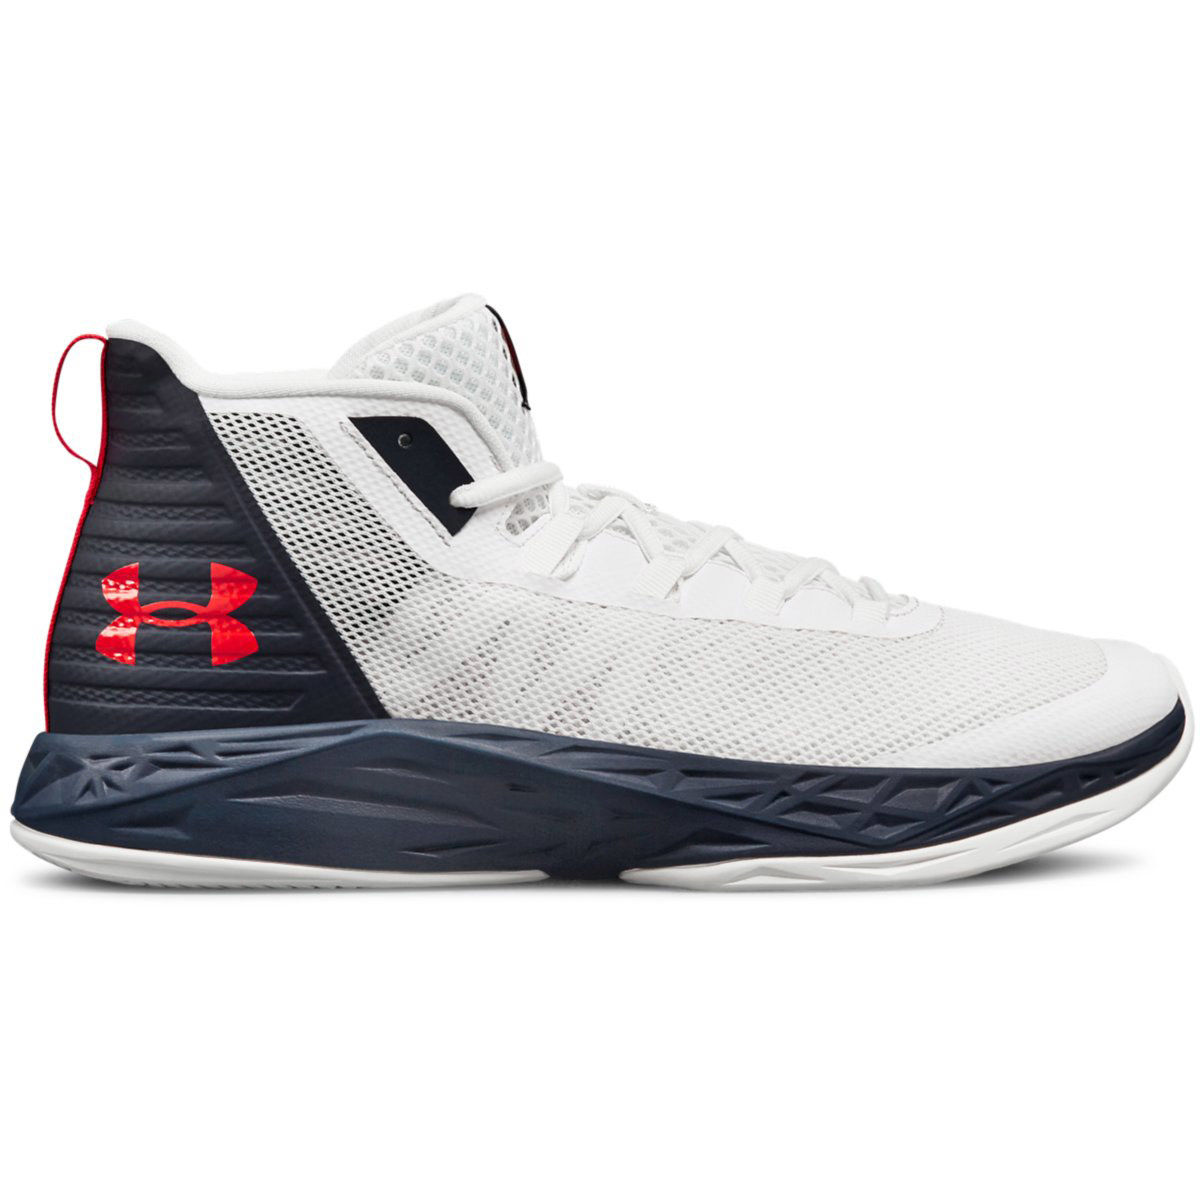 Under Armour Jet 2018 Mens Basketball Shoe